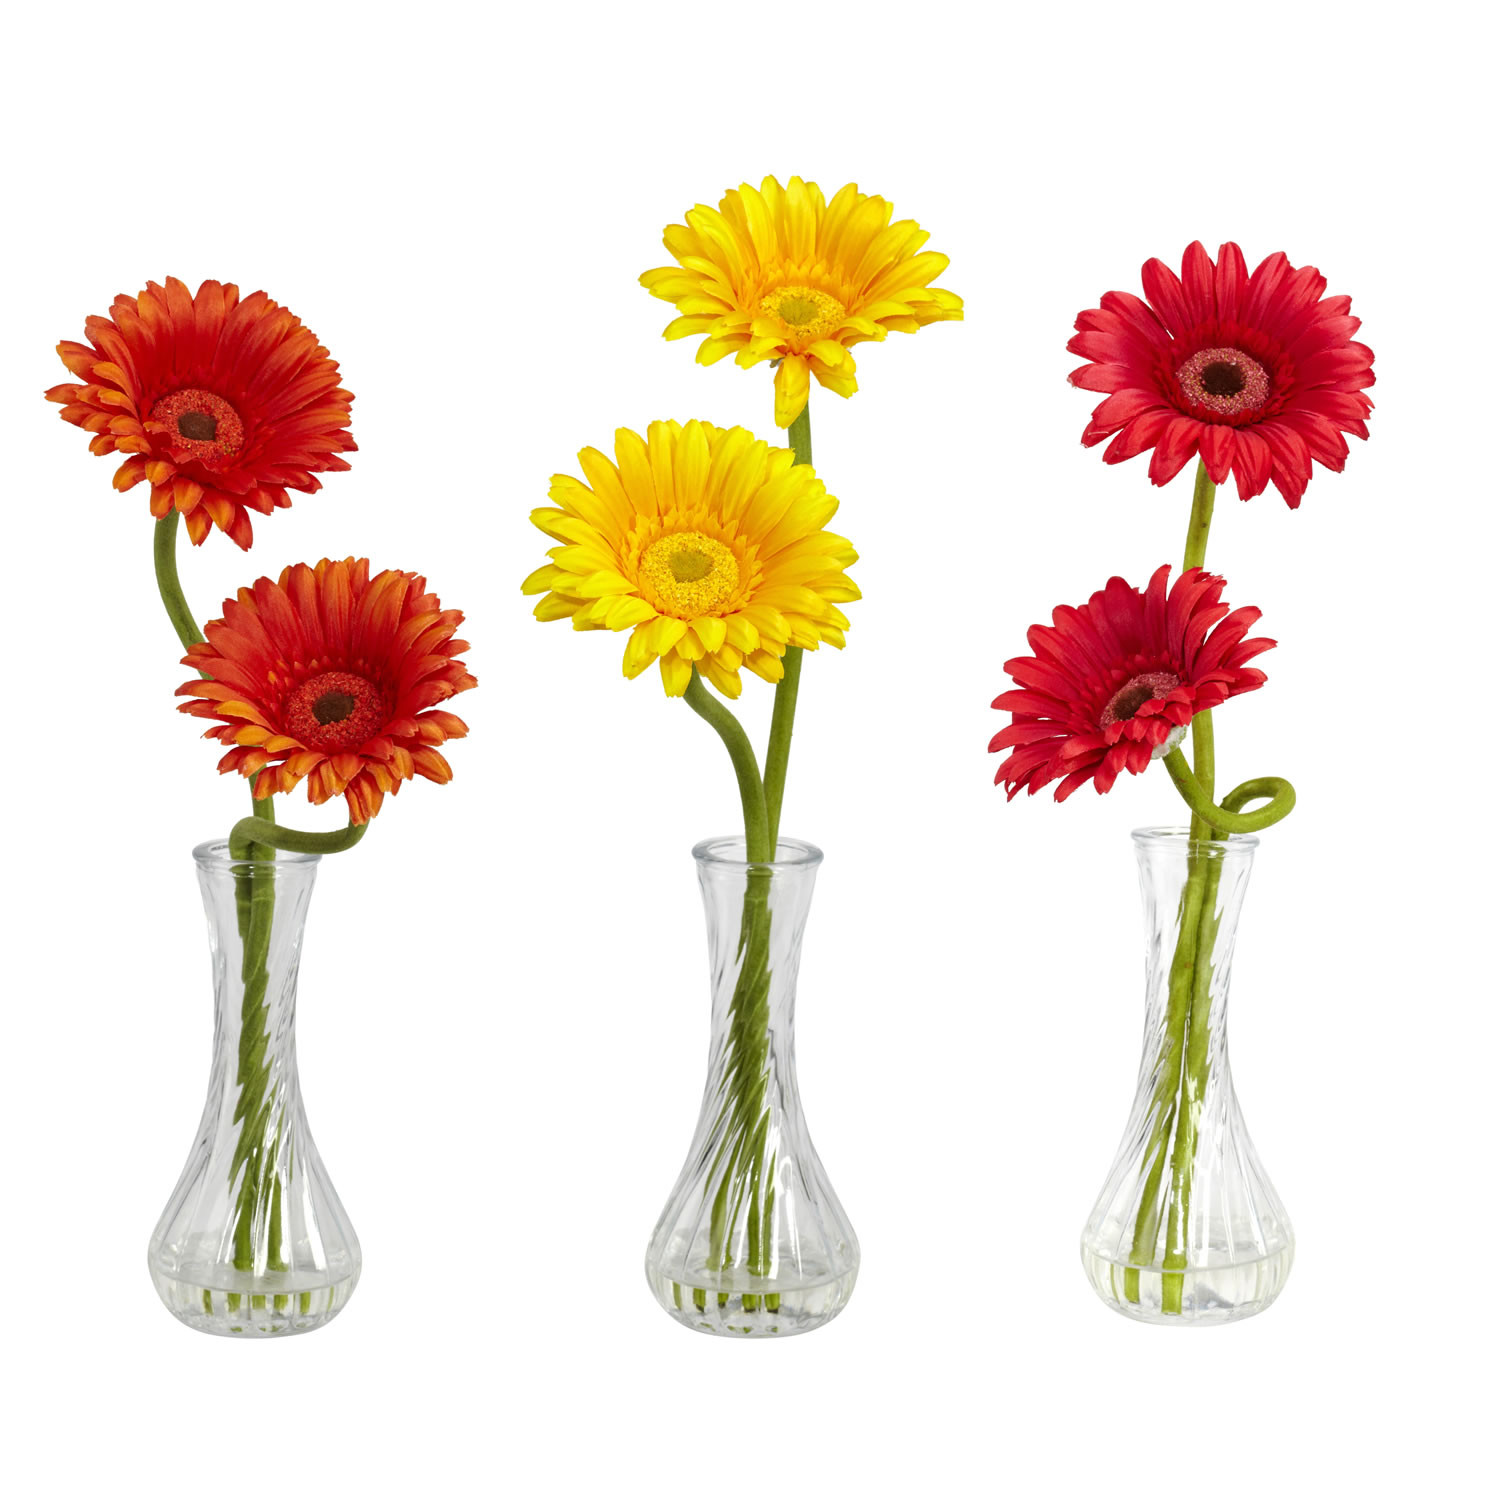 vintage glass bud vases of pictures of flowers in bud vases flowers healthy throughout gerber daisy w bud vase set of 3 silk specialties